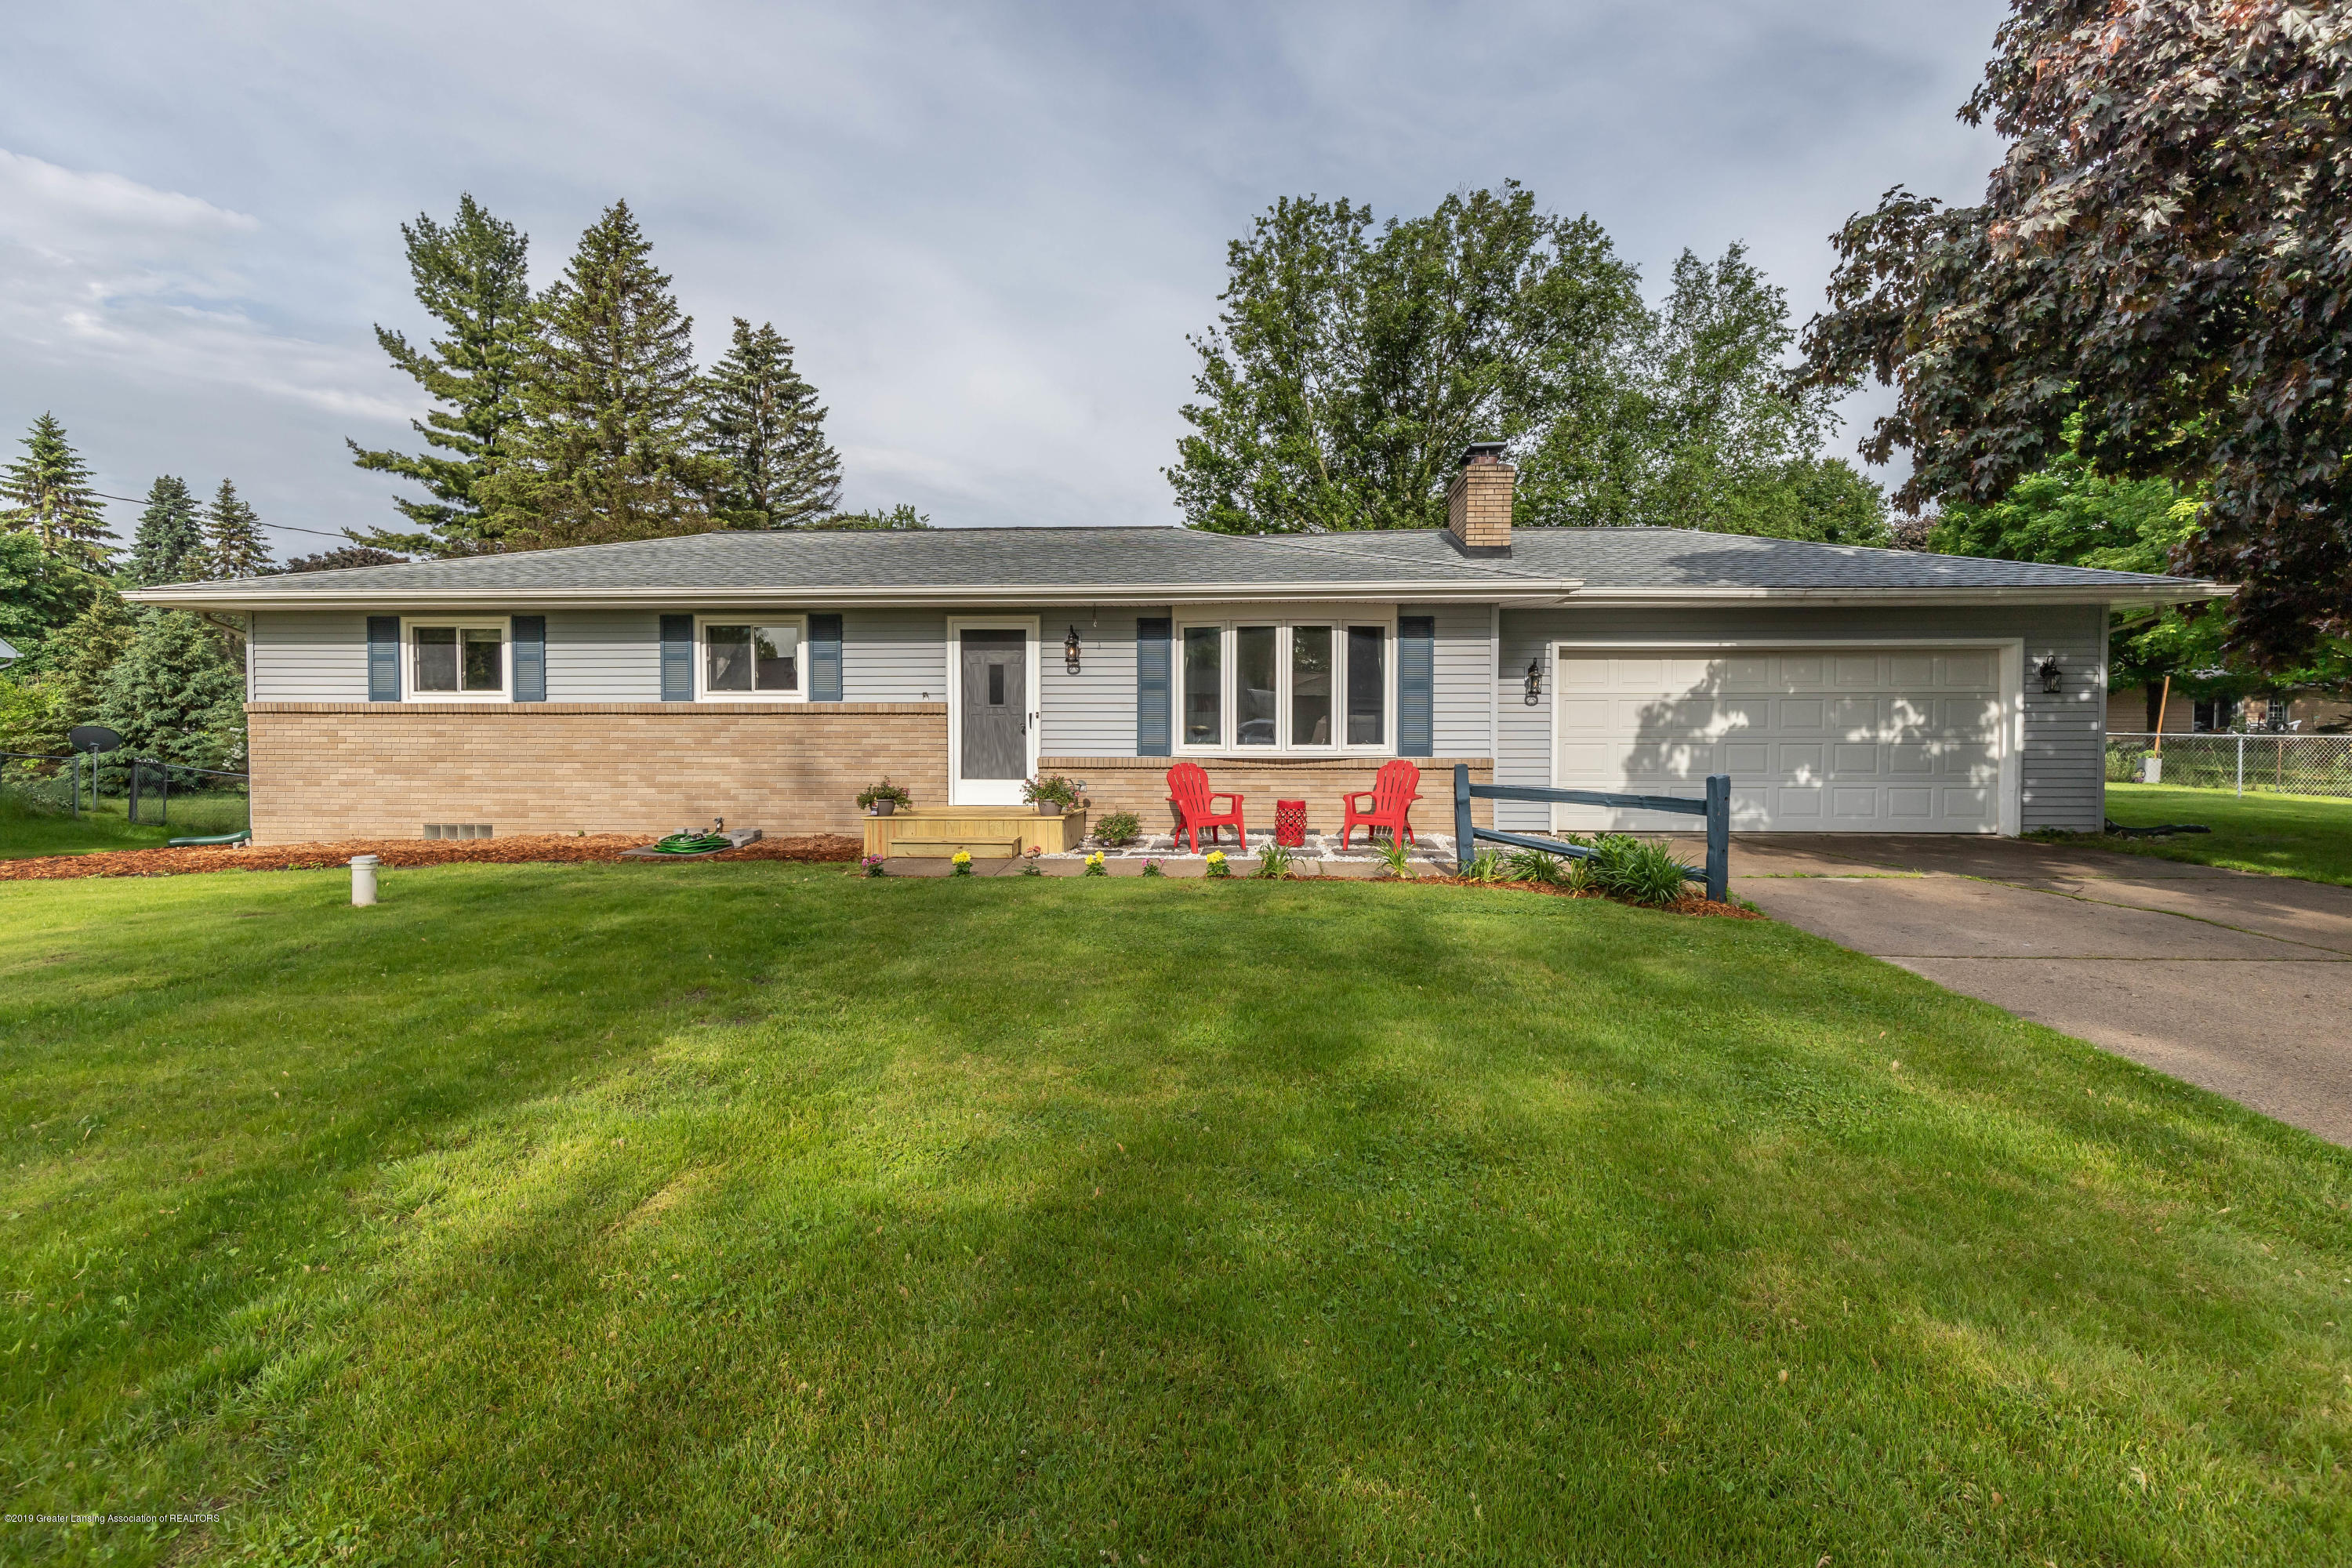 15230 Yorkleigh Dr - yorkbfront2 (1 of 1) - 1